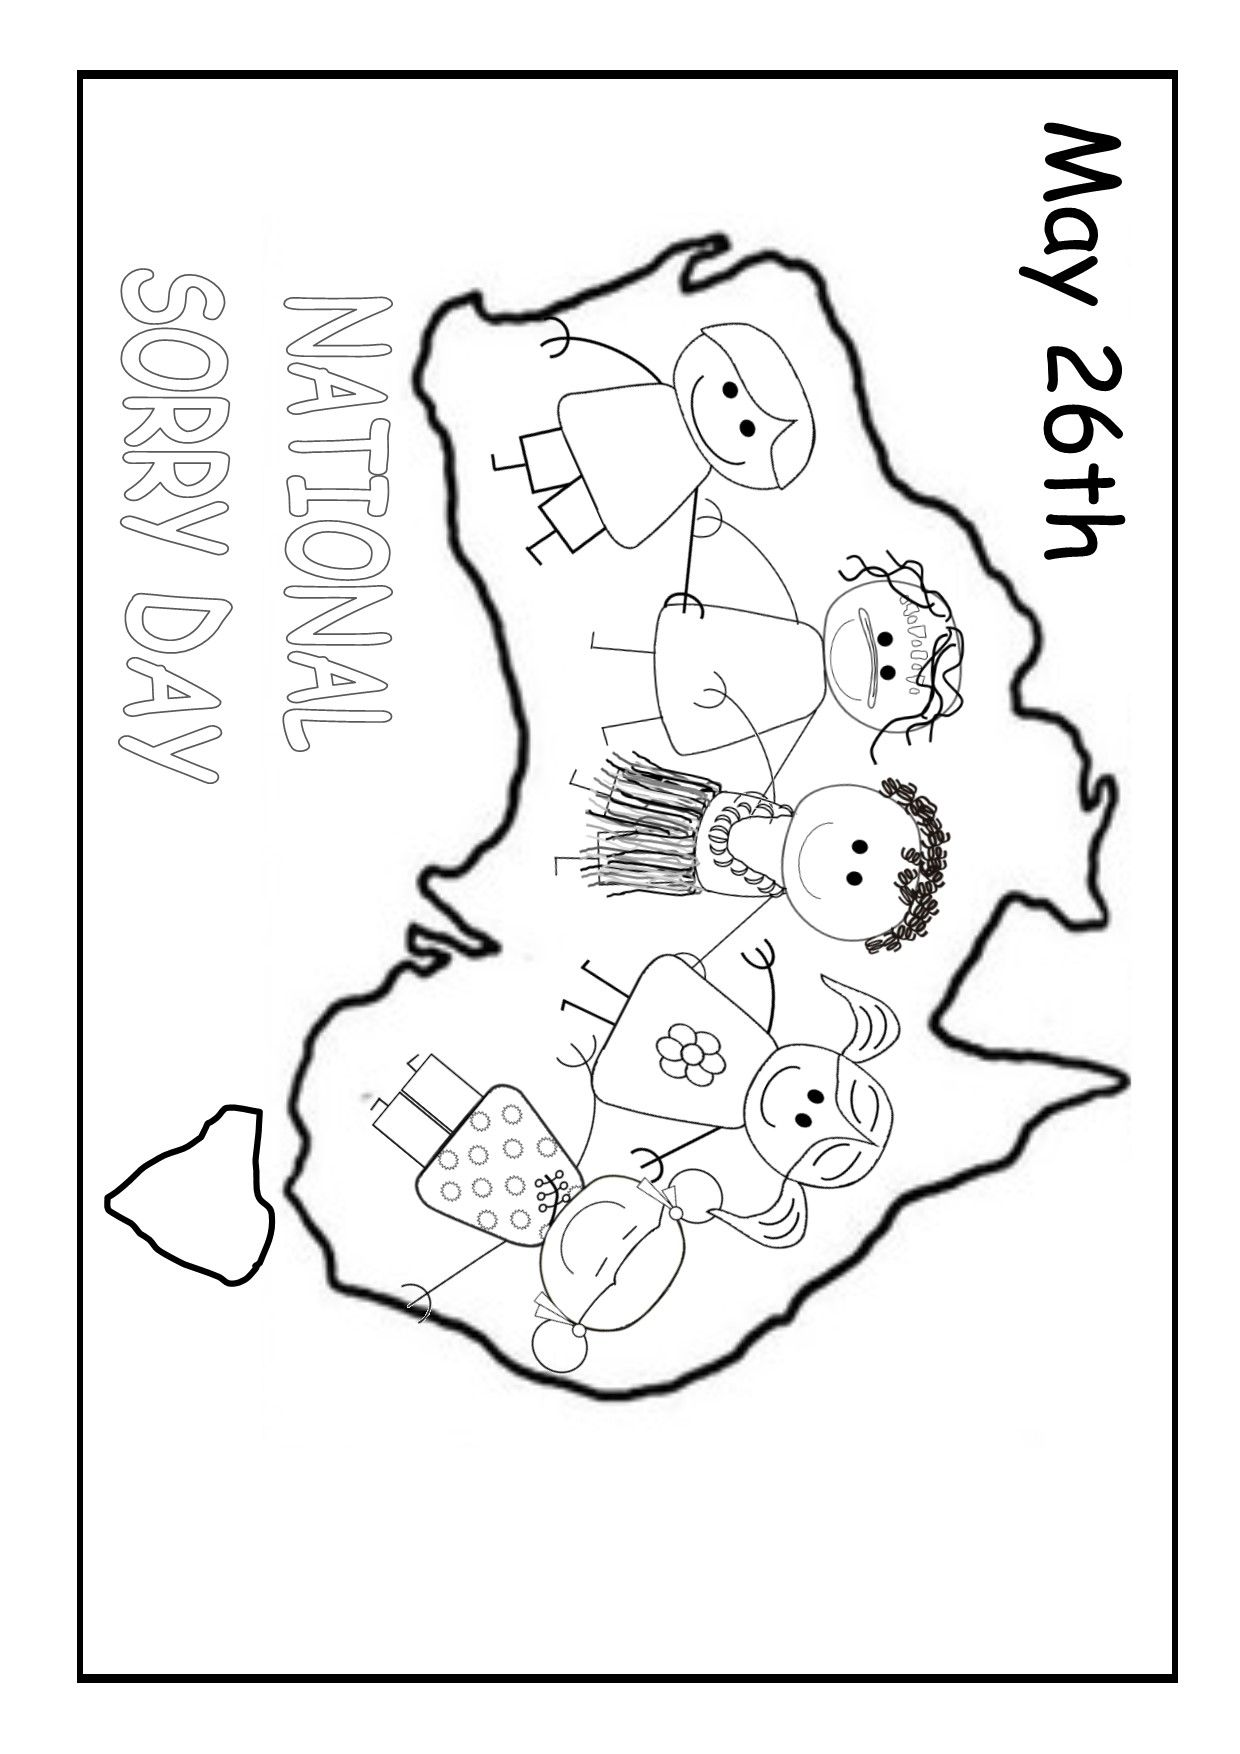 National Sorry Day Australia Colouring Printable